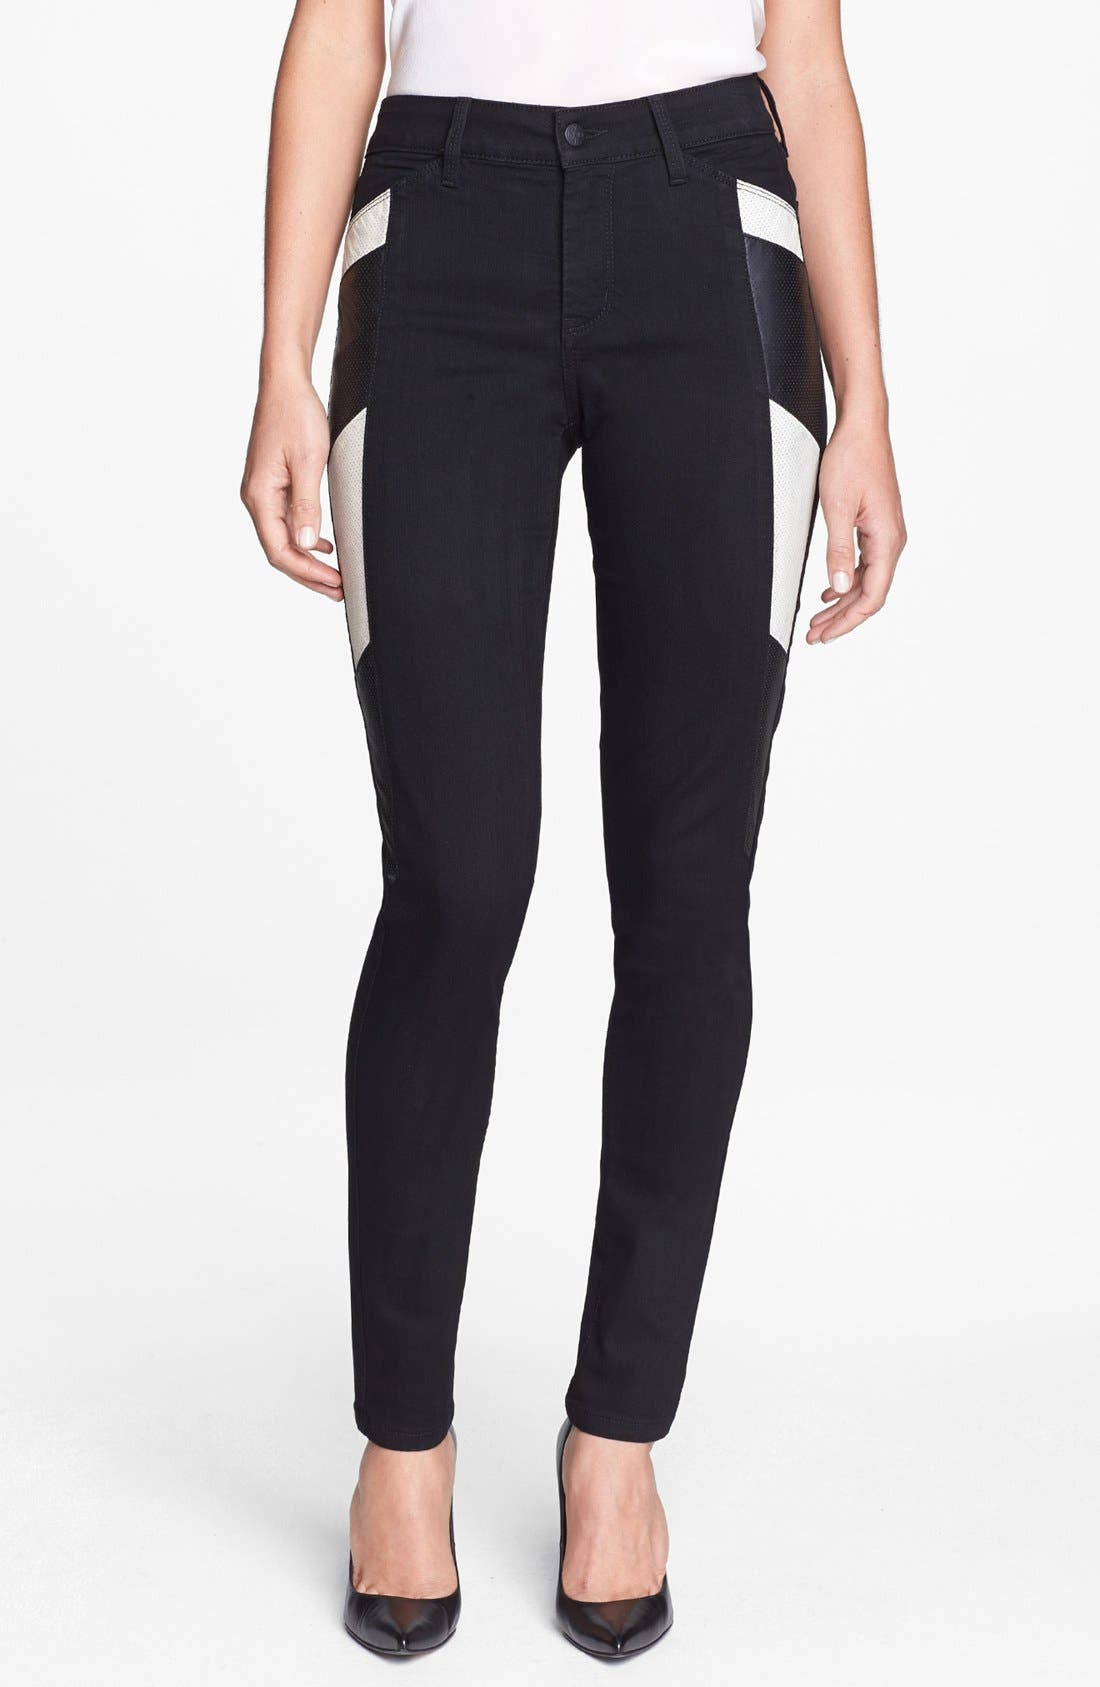 Main Image - NYDJ 'Aiden' Perforated Side Panel Stretch Skinny Jeans